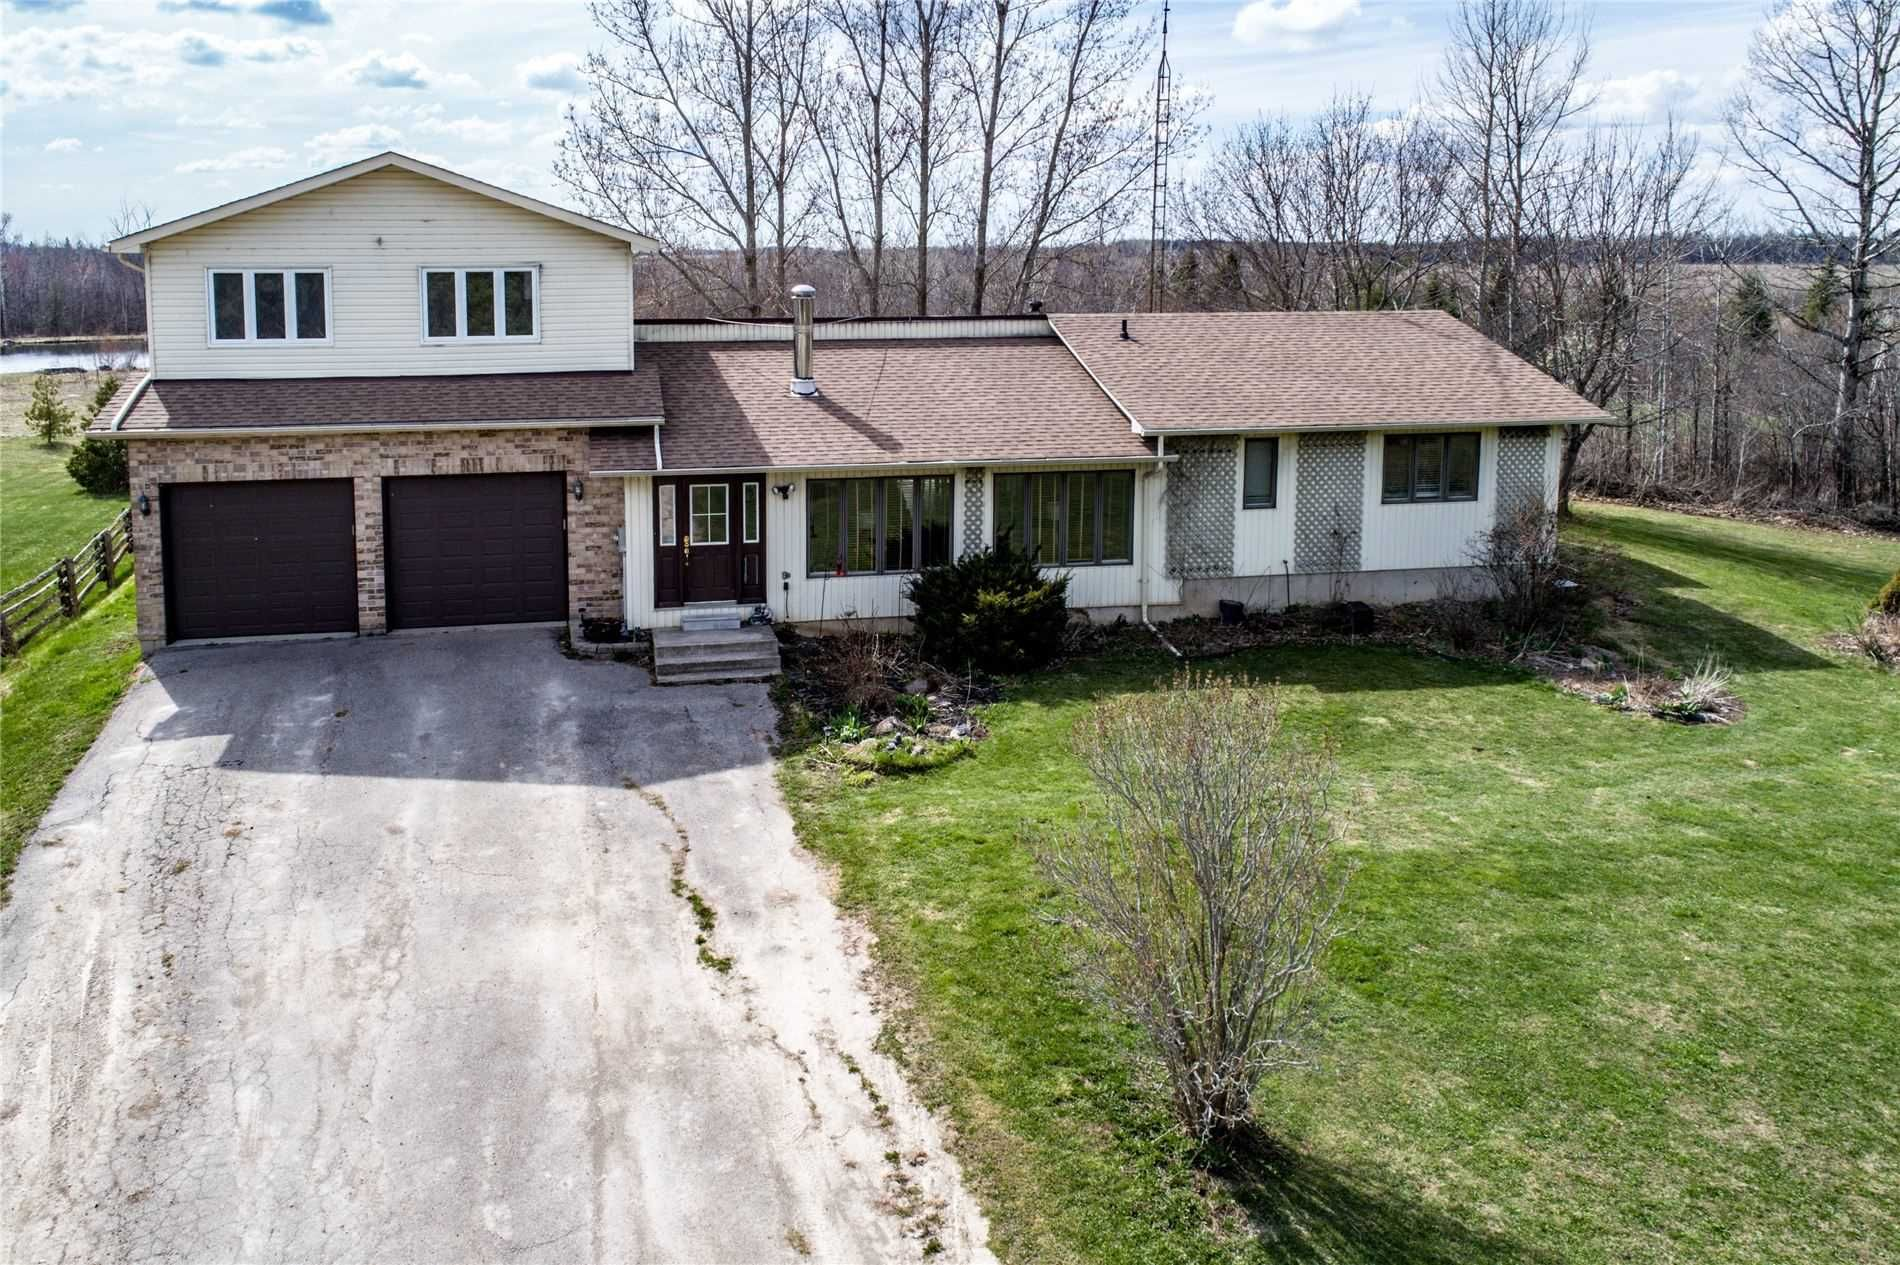 Main Photo: 433056 4th Line in Amaranth: Rural Amaranth House (Bungalow) for sale : MLS®# X5200257